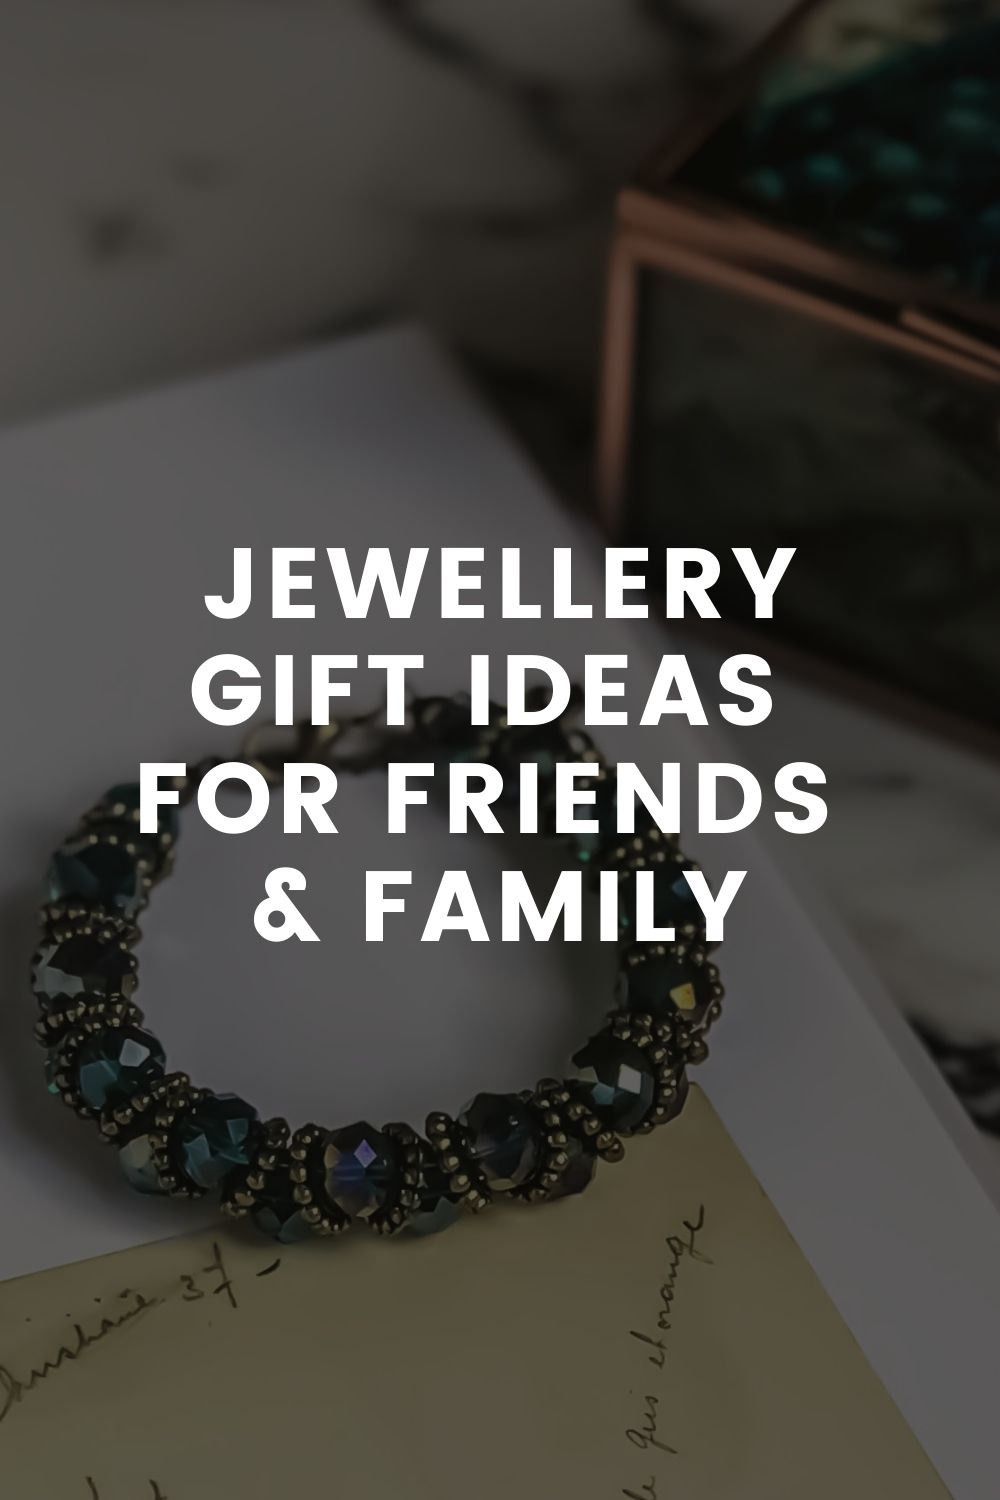 Jewellery Gift Ideas For Friends & Family